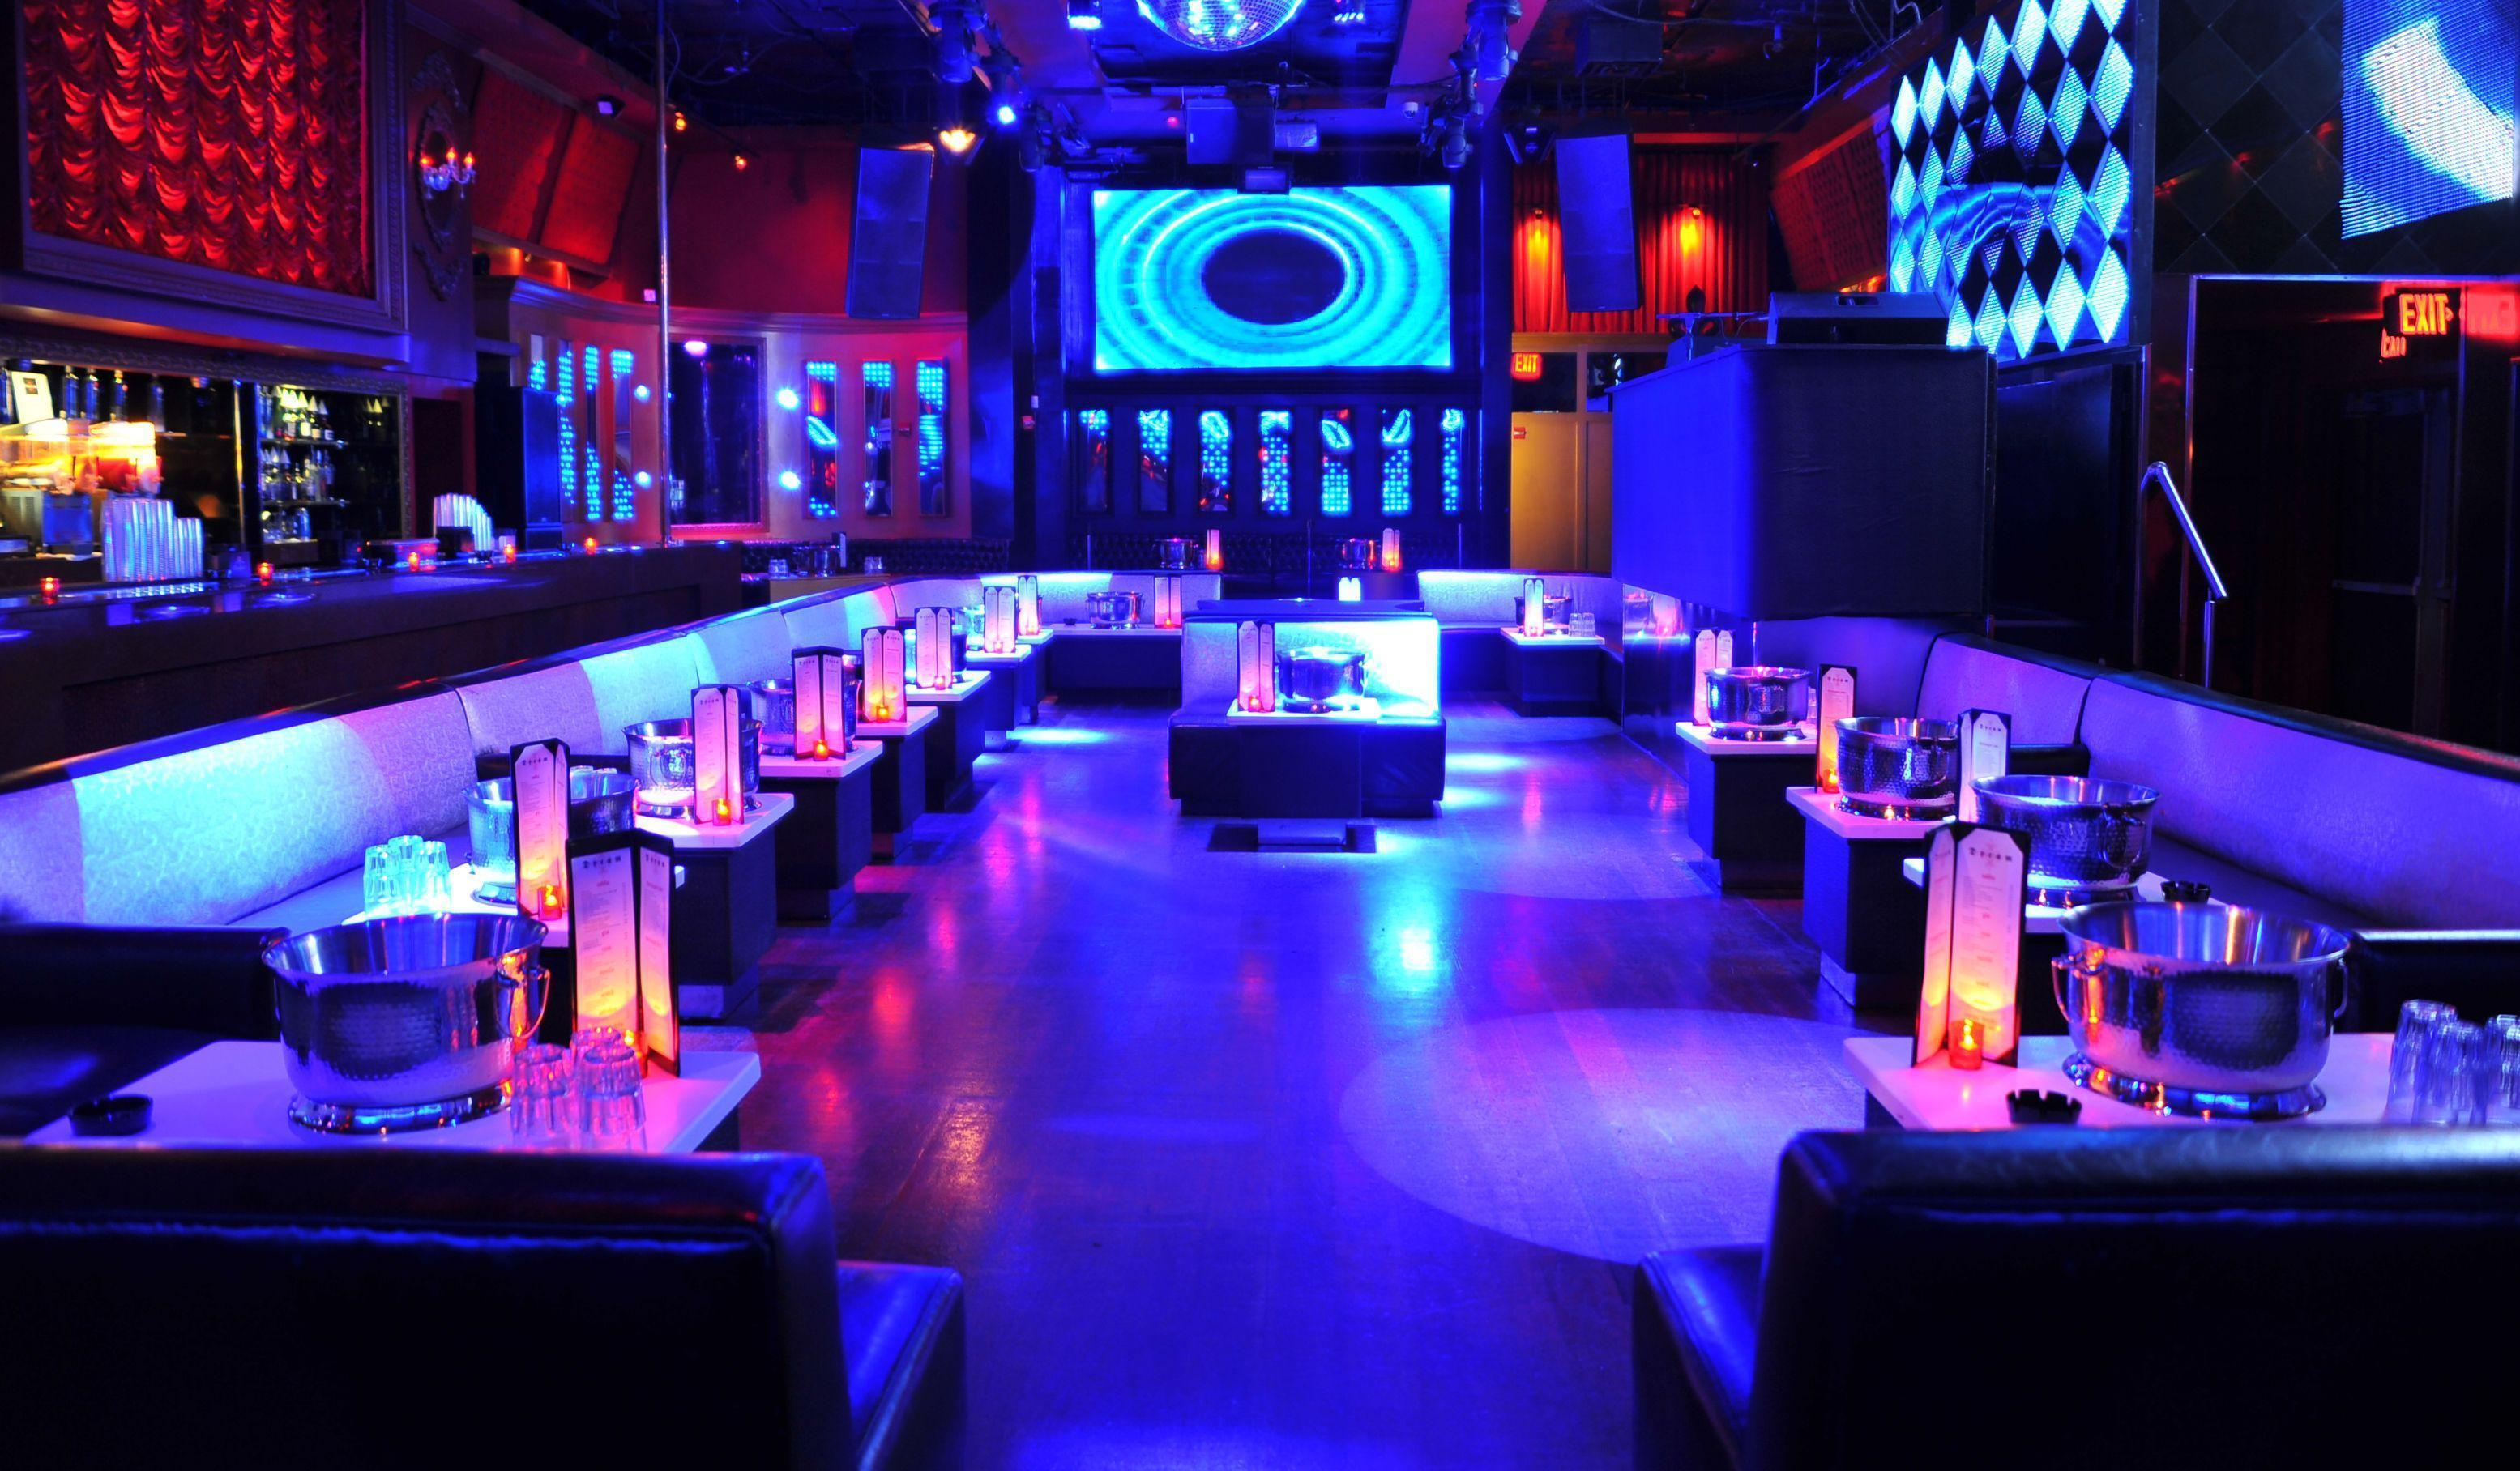 Night Club Wallpapers Wallpaper Cave